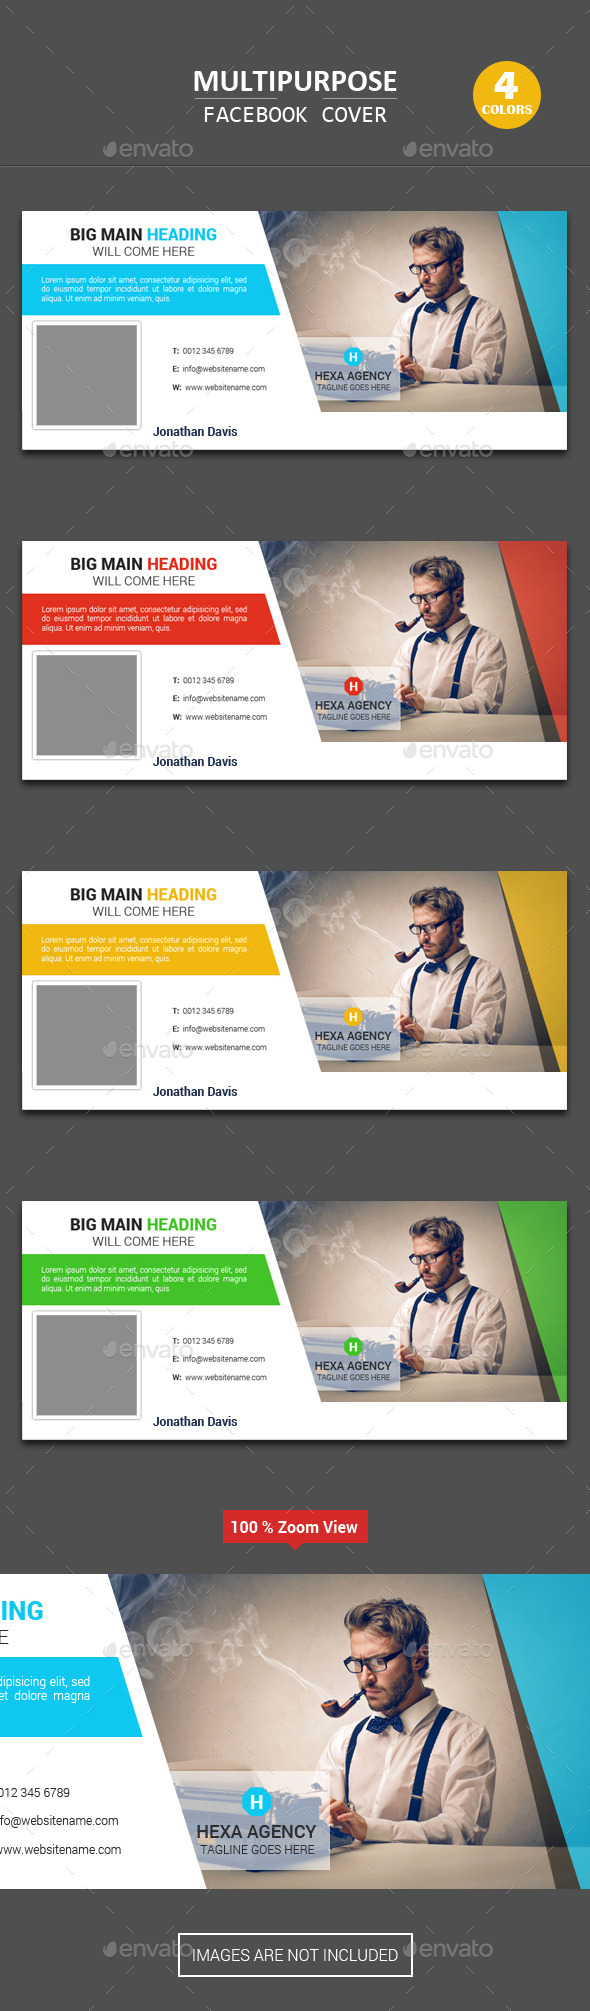 GraphicRiver Multipurpose Facebook Cover 11769754